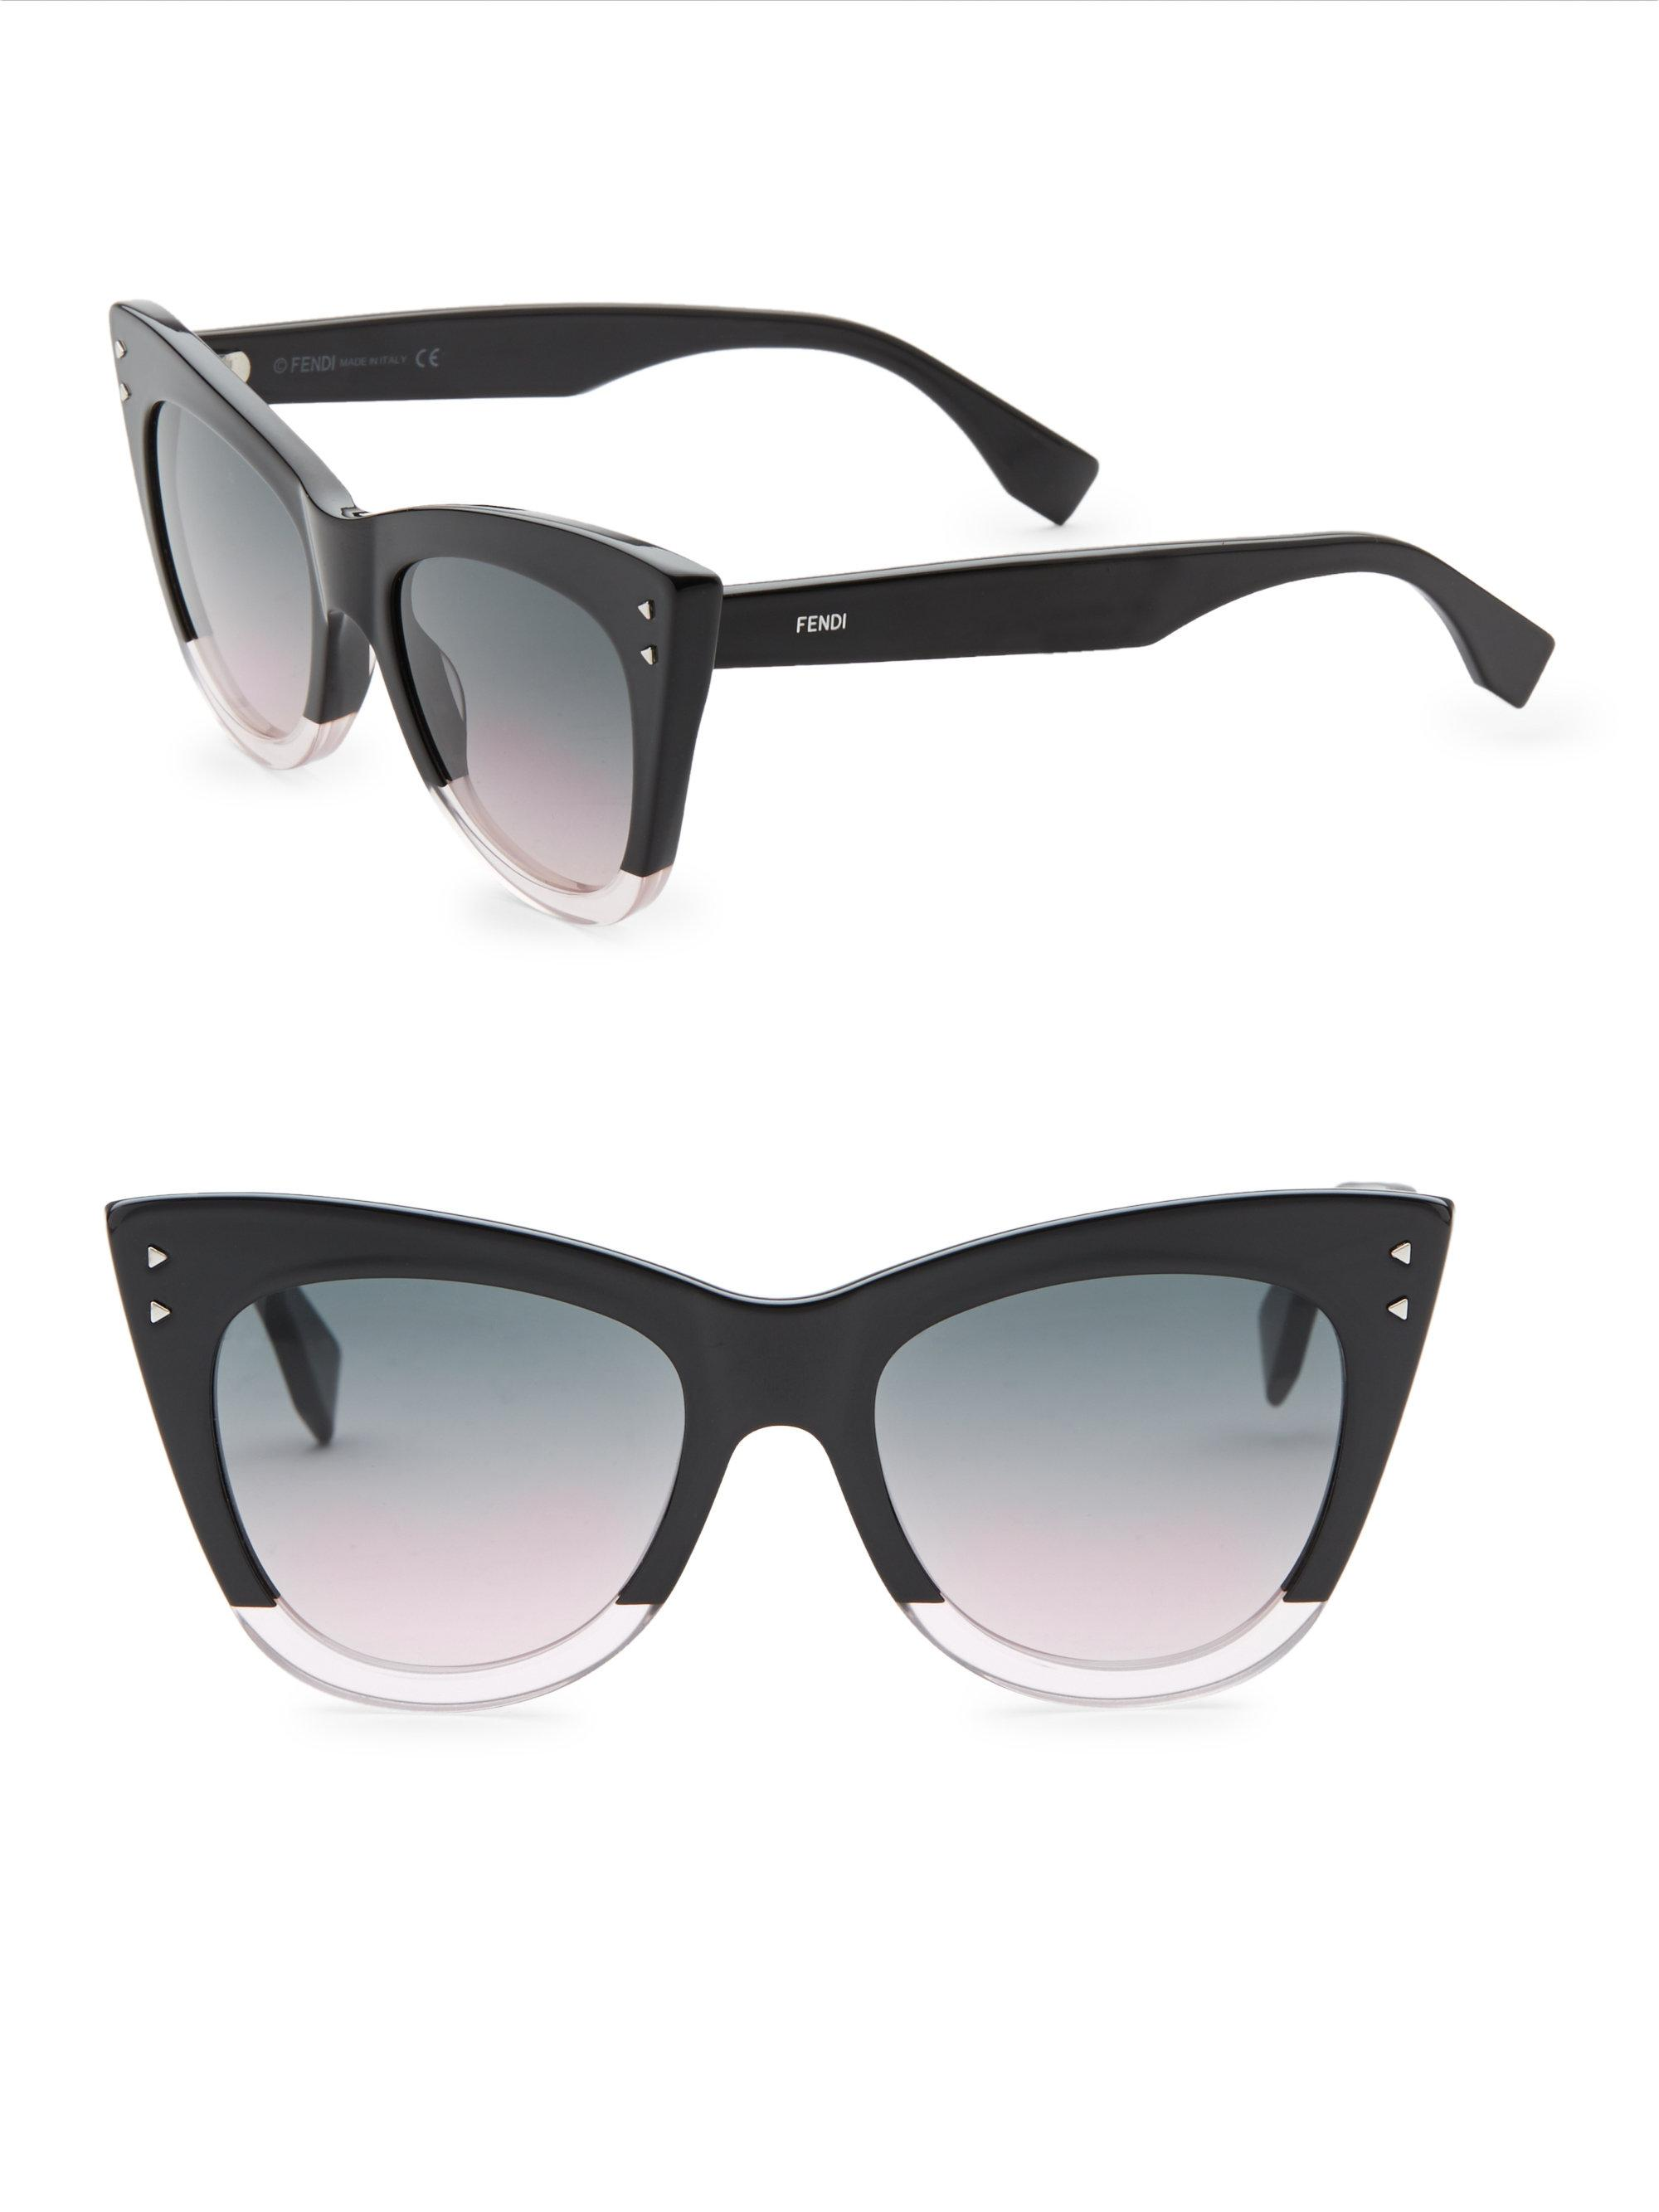 1721e180baafc Fendi - Black 52mm Two-tone Cat Eye Sunglasses - Lyst. View fullscreen